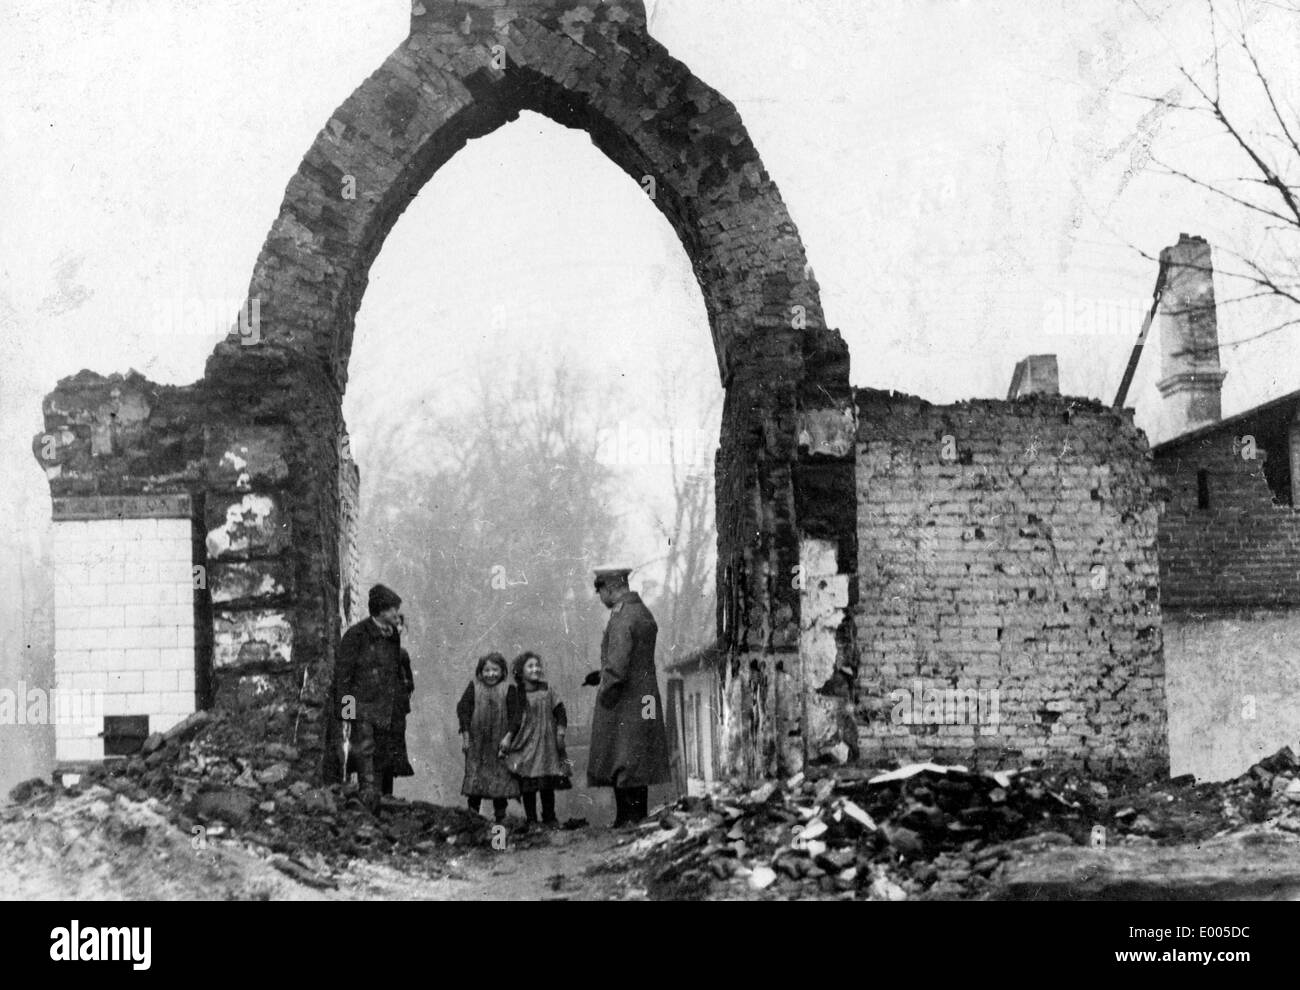 Soldier and civilians amidst debris in Sochaczew, 1915 - Stock Image